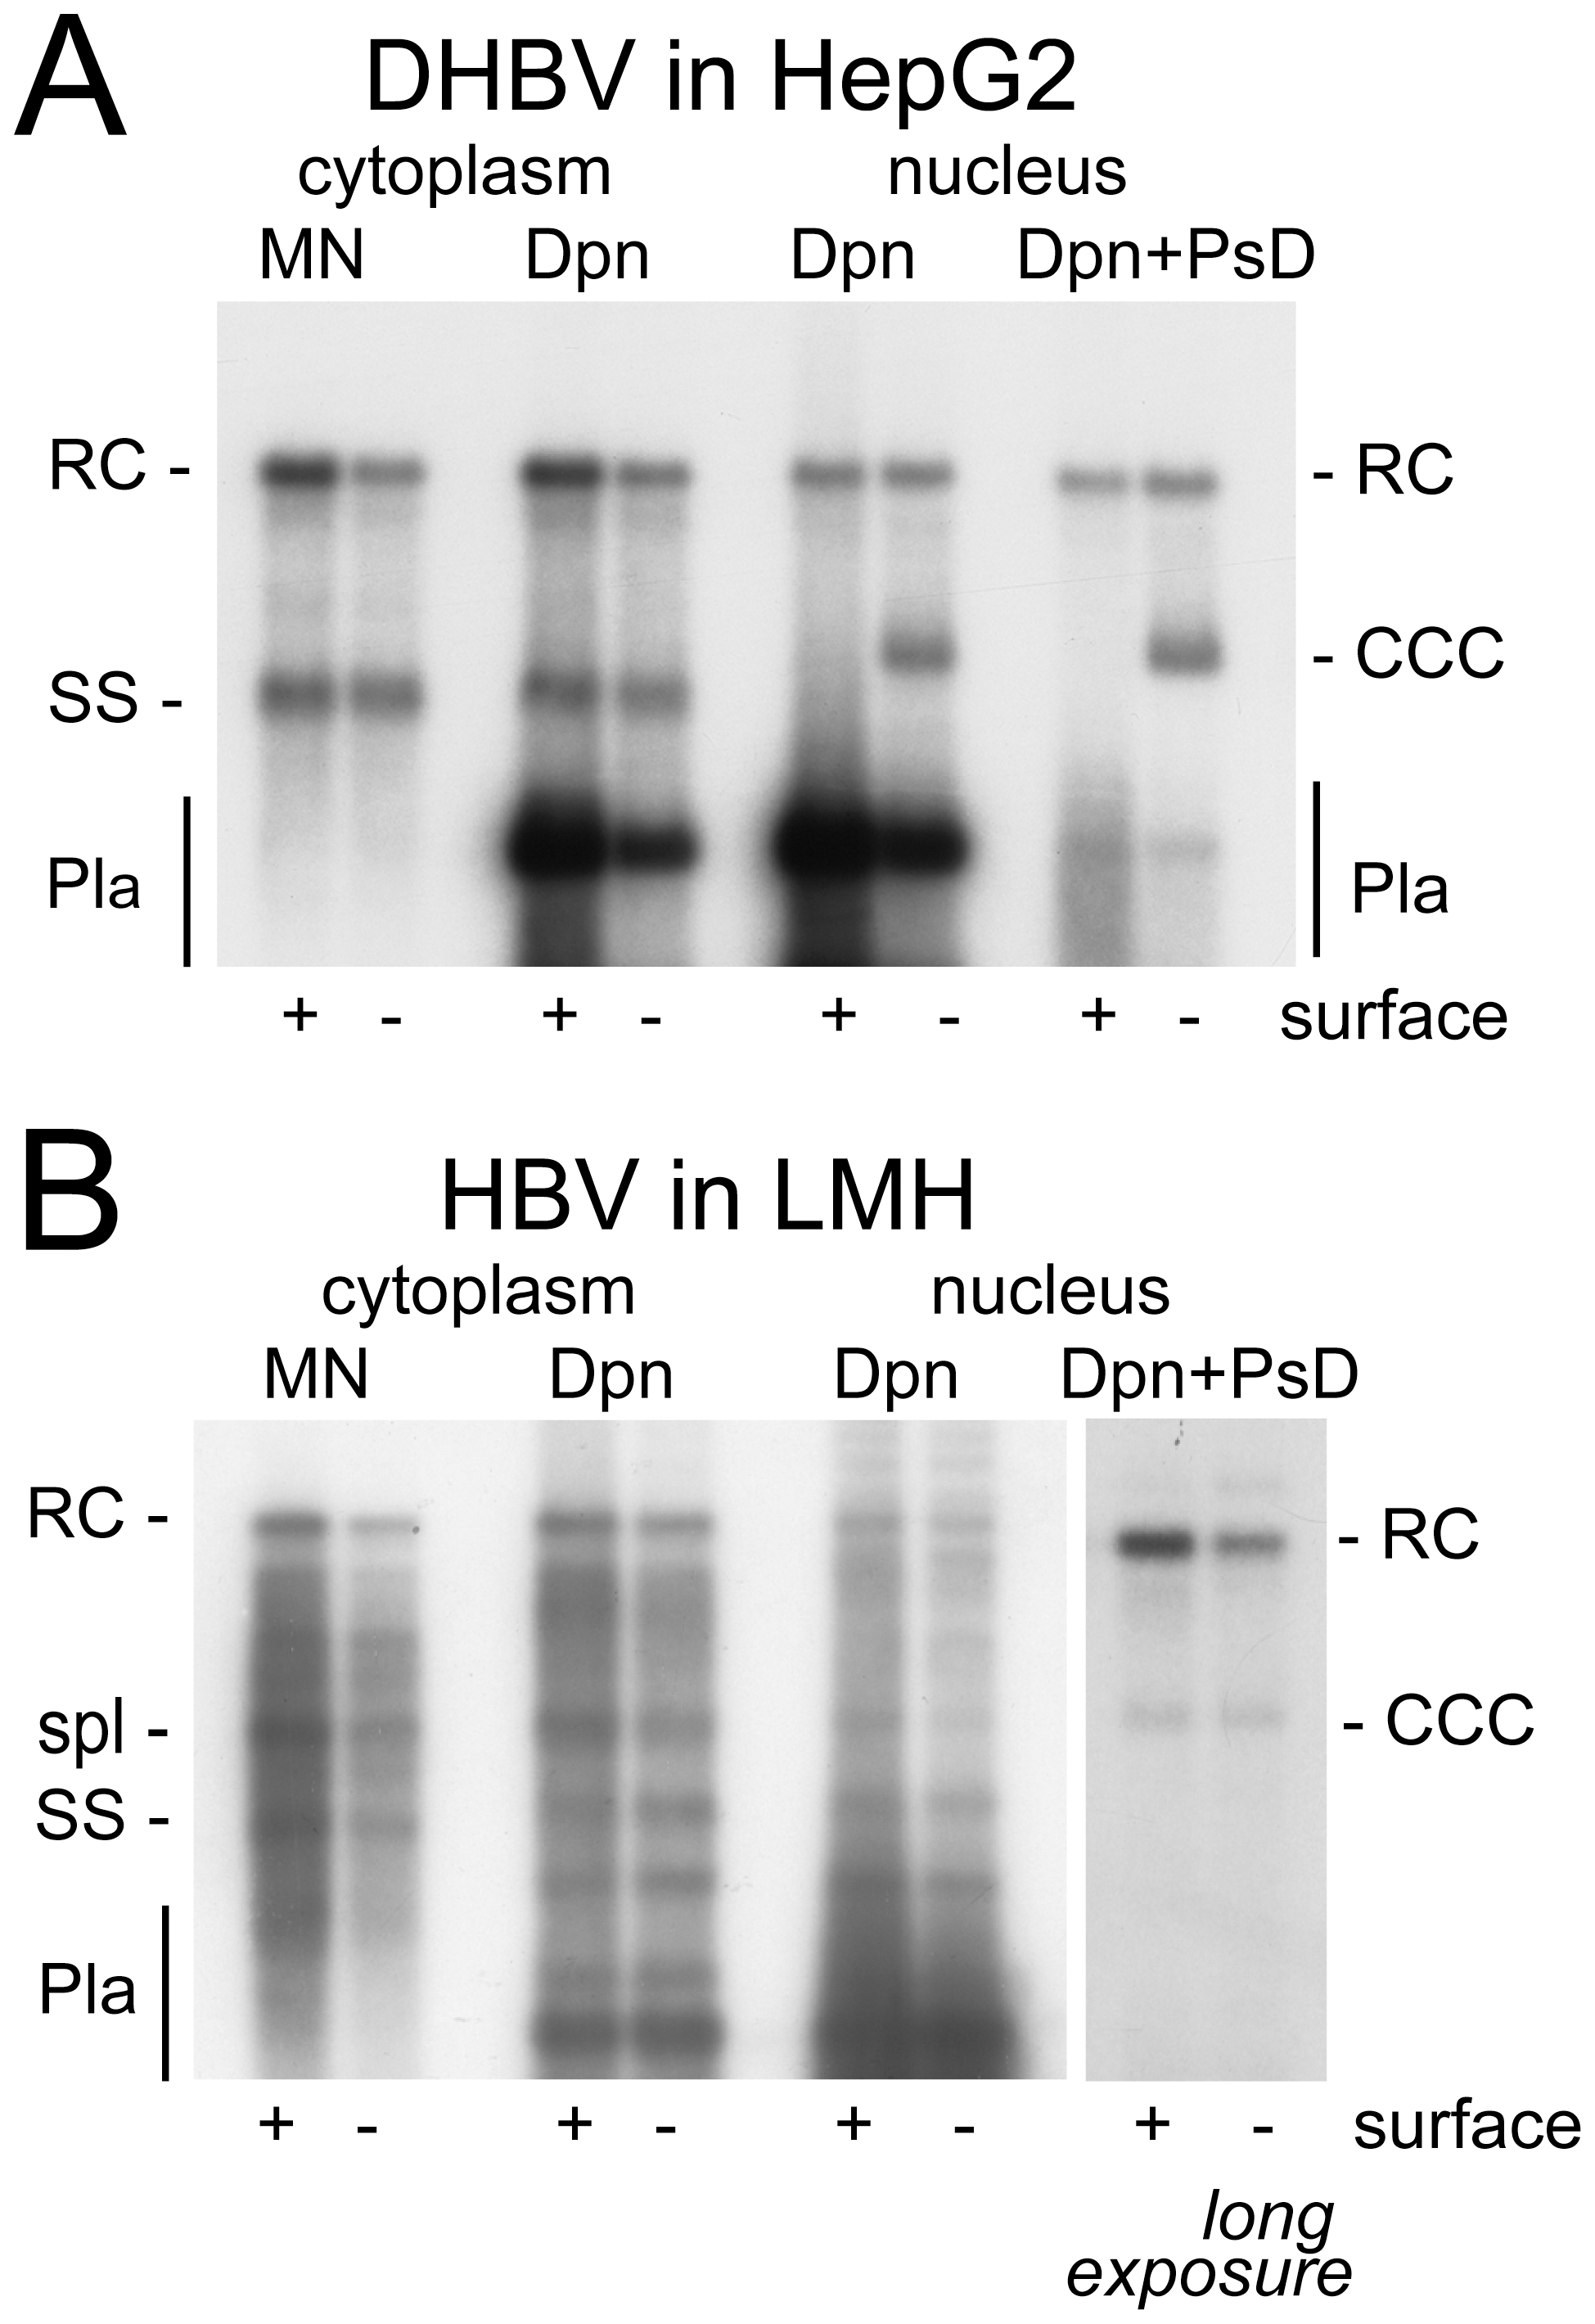 DHBV replication in human cells and HBV replication in avian cells.